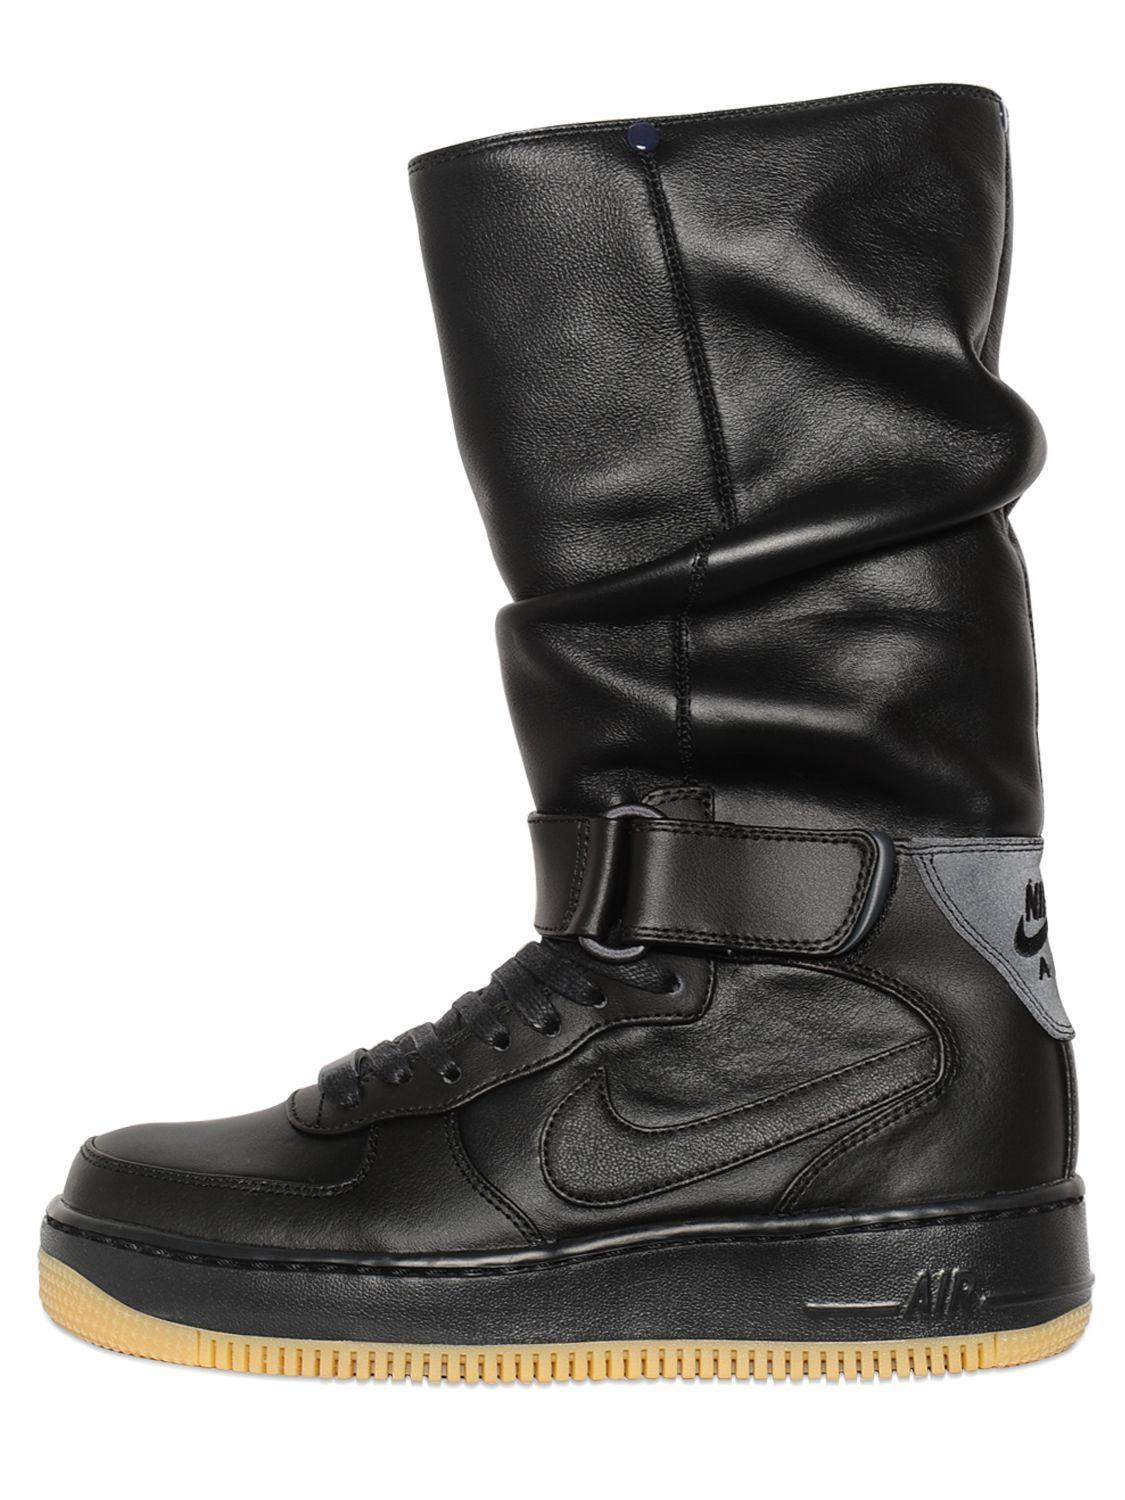 nike upstep warrior leather sneaker boots in black for